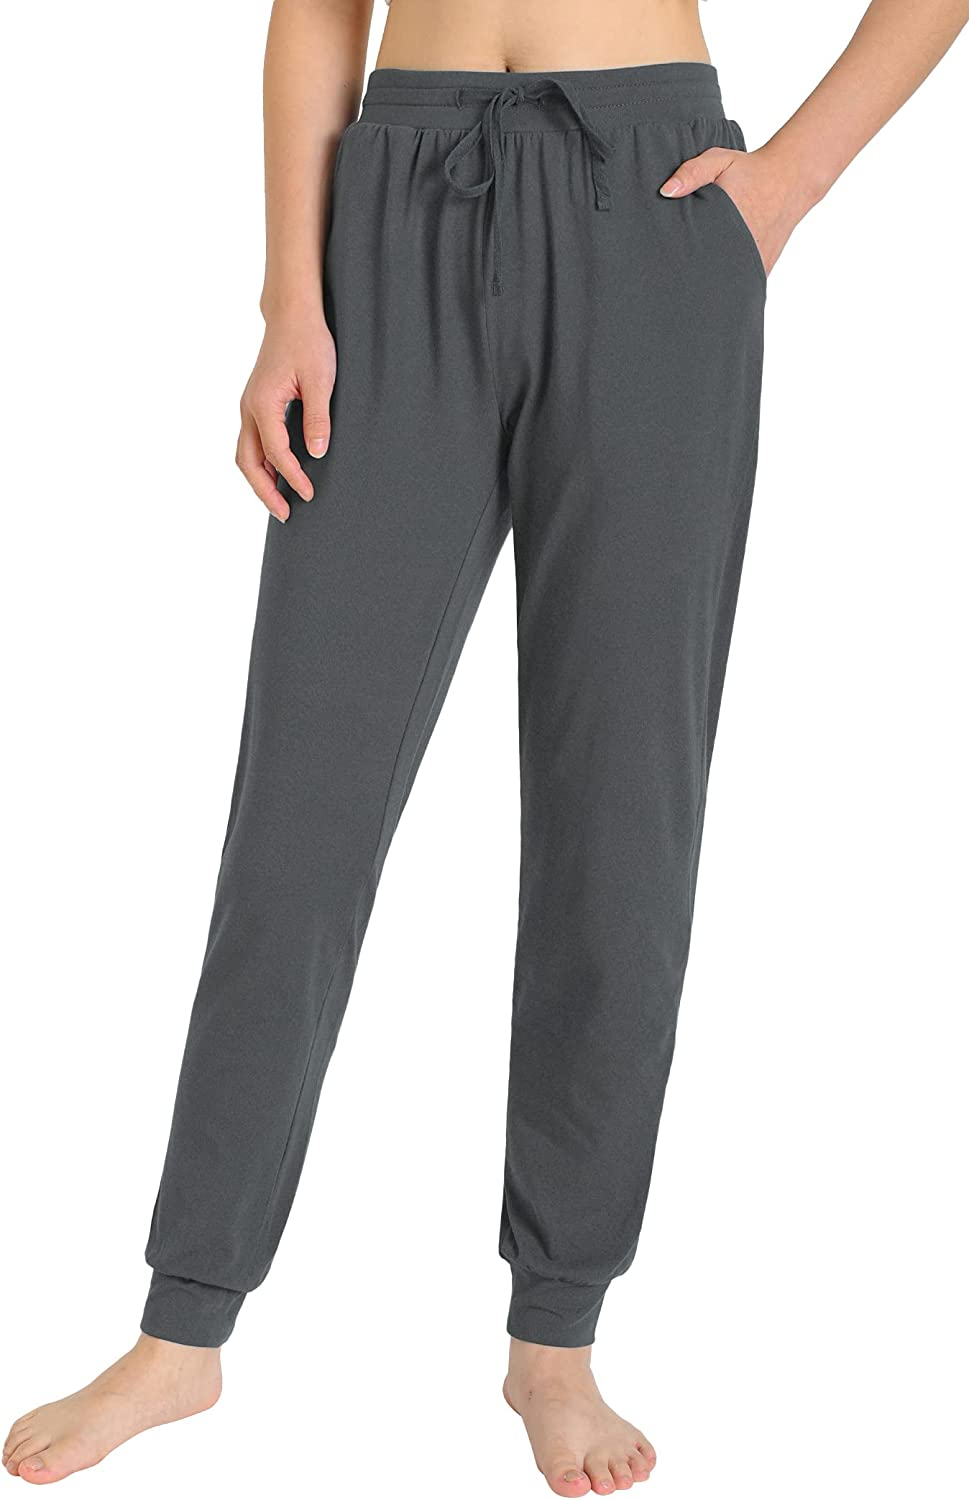 Weintee Women's Workout Joggers Athletic Sweatpants with Pockets